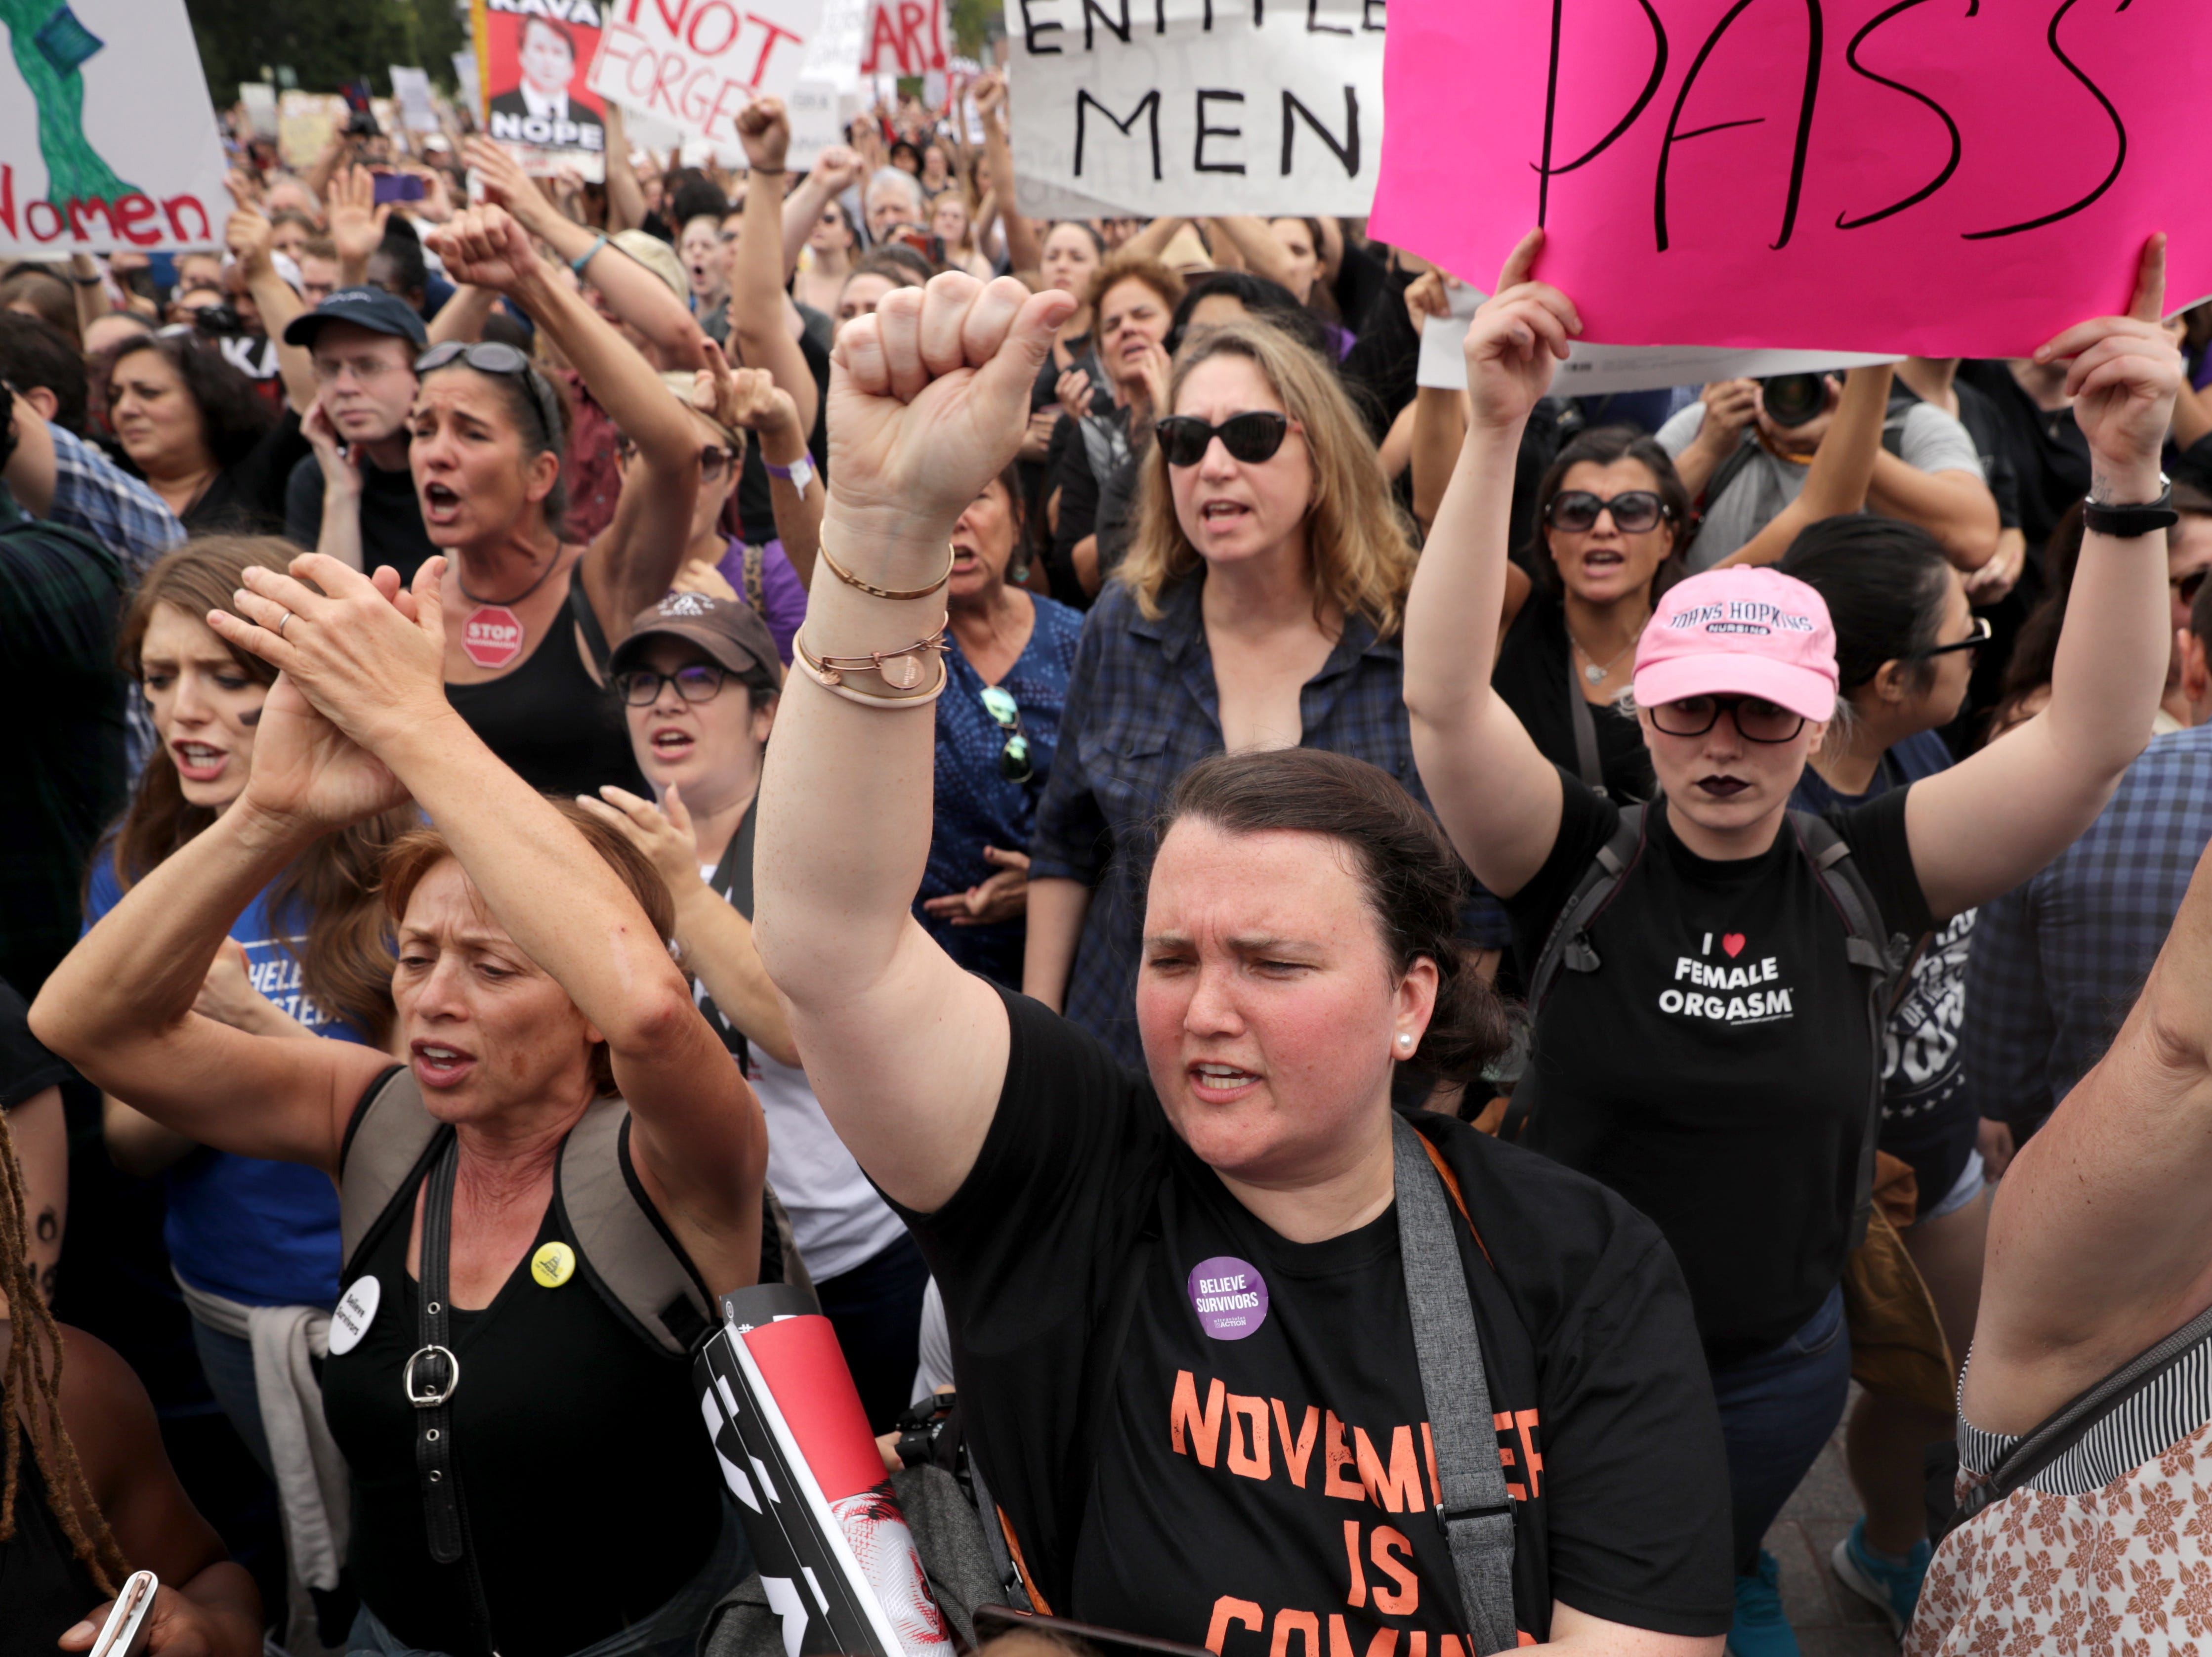 WASHINGTON, DC - OCTOBER 06: People cheer for fellow protesters who occupied the center steps of the East Front of the U.S. Capitol after breaking through barricades to demonstrate against the confirmation of Supreme Court nominee Judge Brett Kavanaugh October 06, 2018 in Washington, DC. The Senate is scheduled to vote on Kavanaugh's confirmation later in the day. (Photo by Chip Somodevilla/Getty Images)